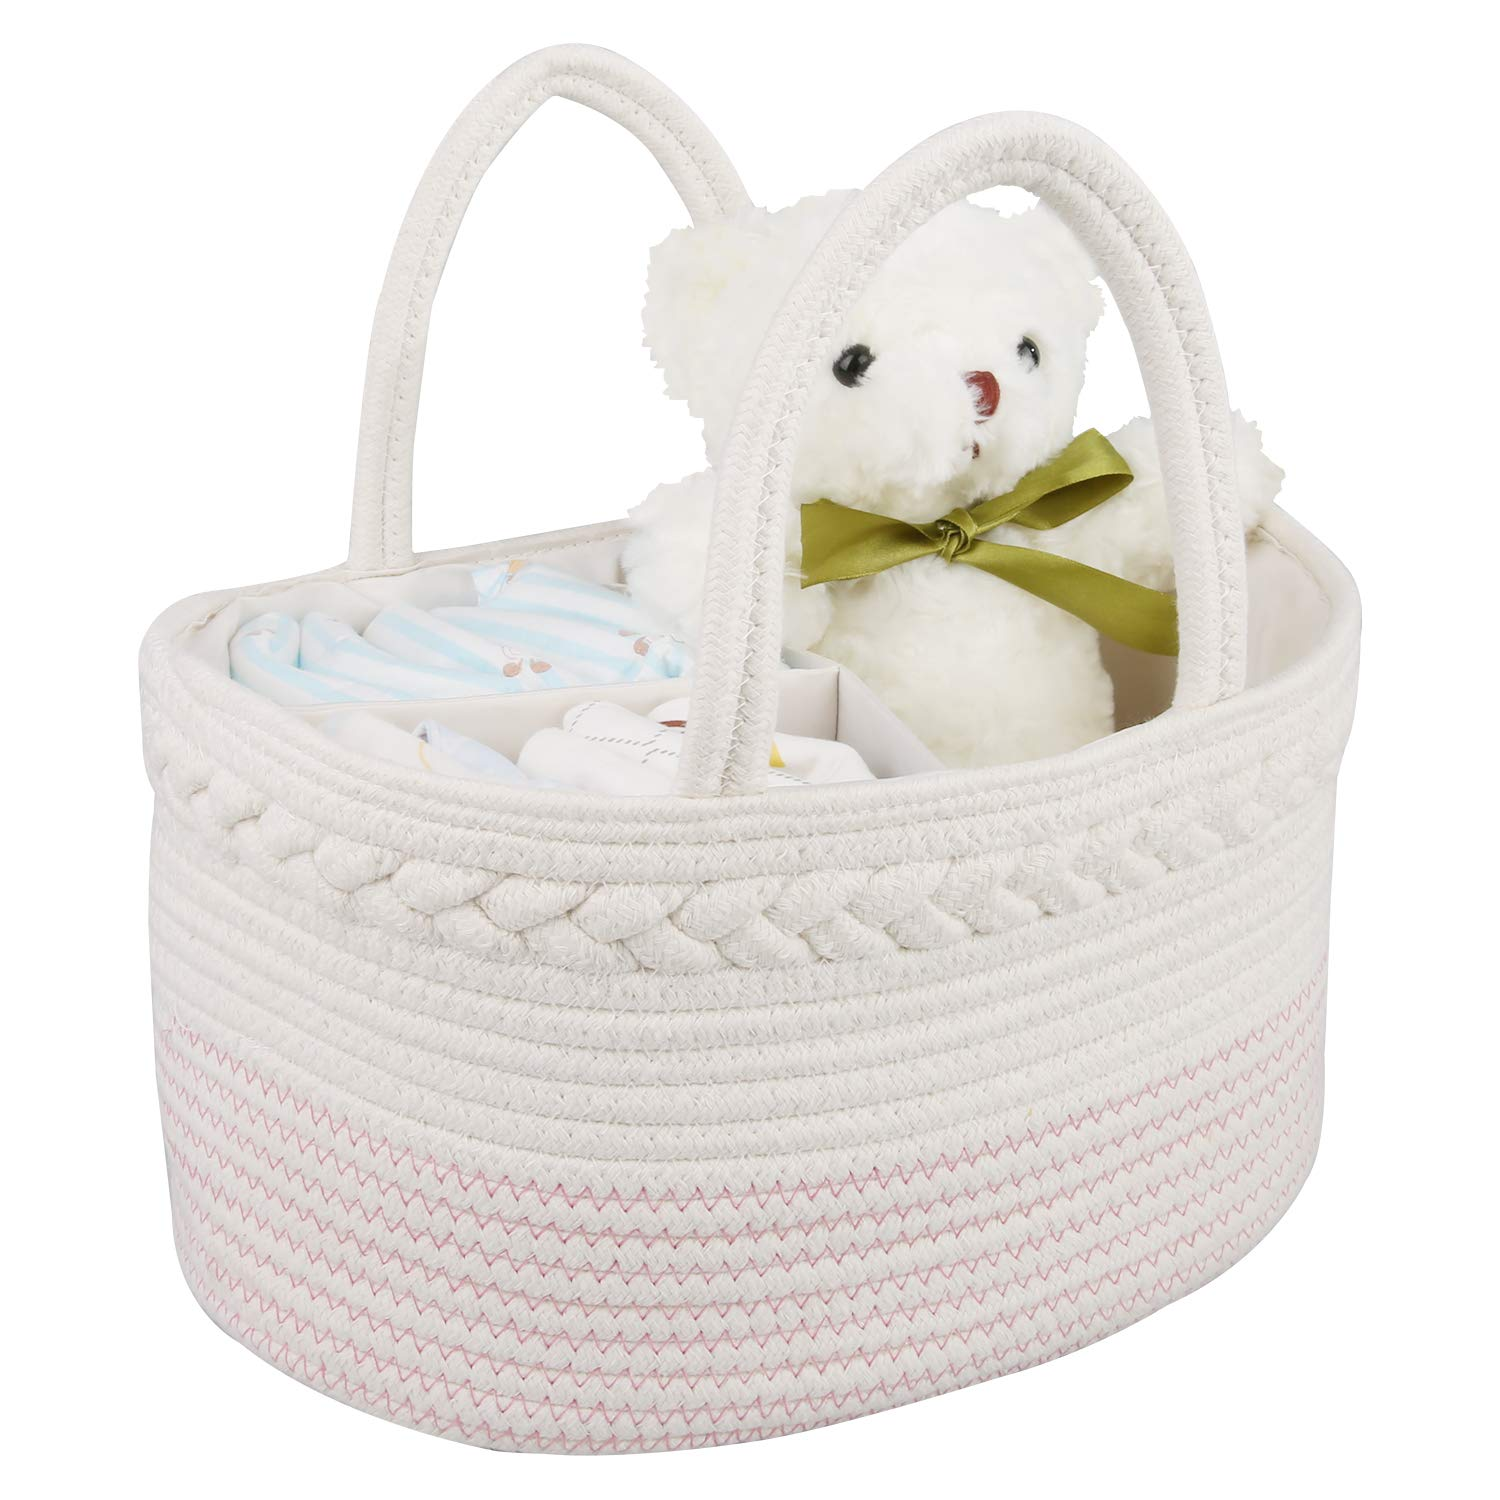 Baby Diaper Caddy Organizer for Home and Travel - GESUNDHOME Portable Diaper Caddy for Newborn Essentials with Removable Inserts - Baby Shower Gift Basket (Pink & White)